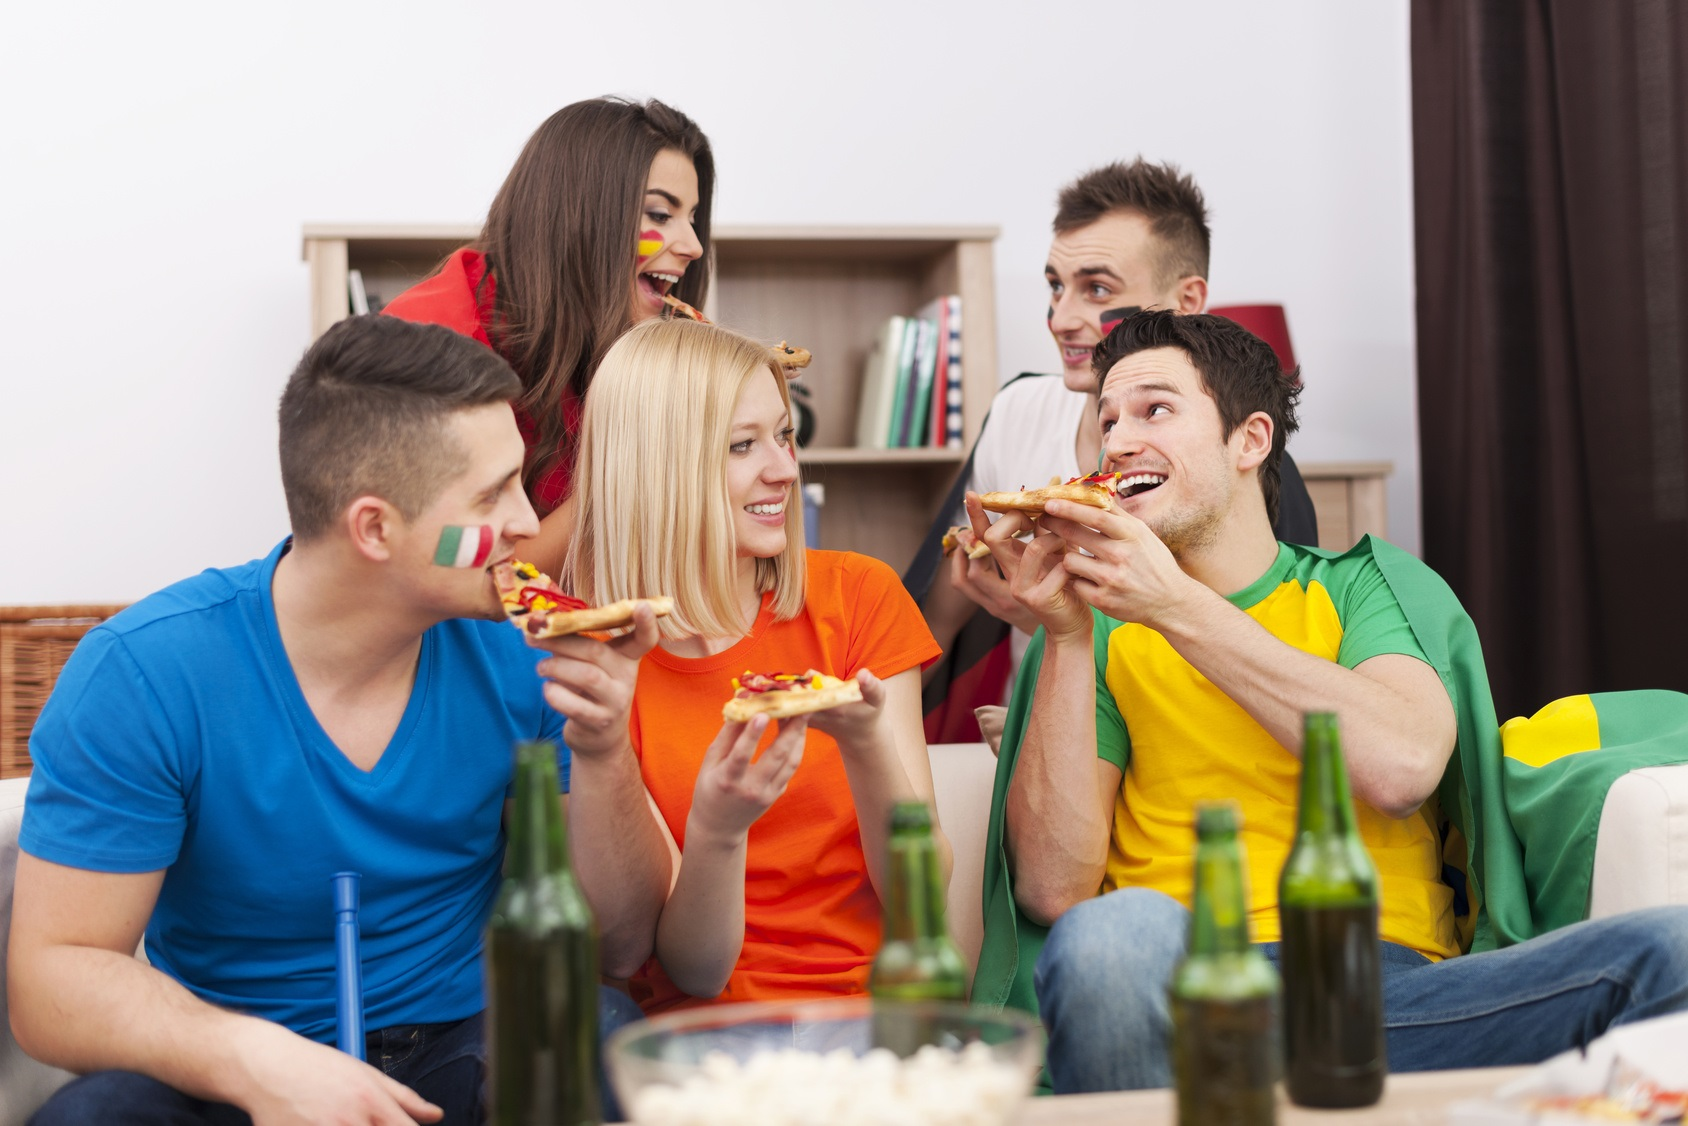 Group of multinational people eating pizza during the break in football match